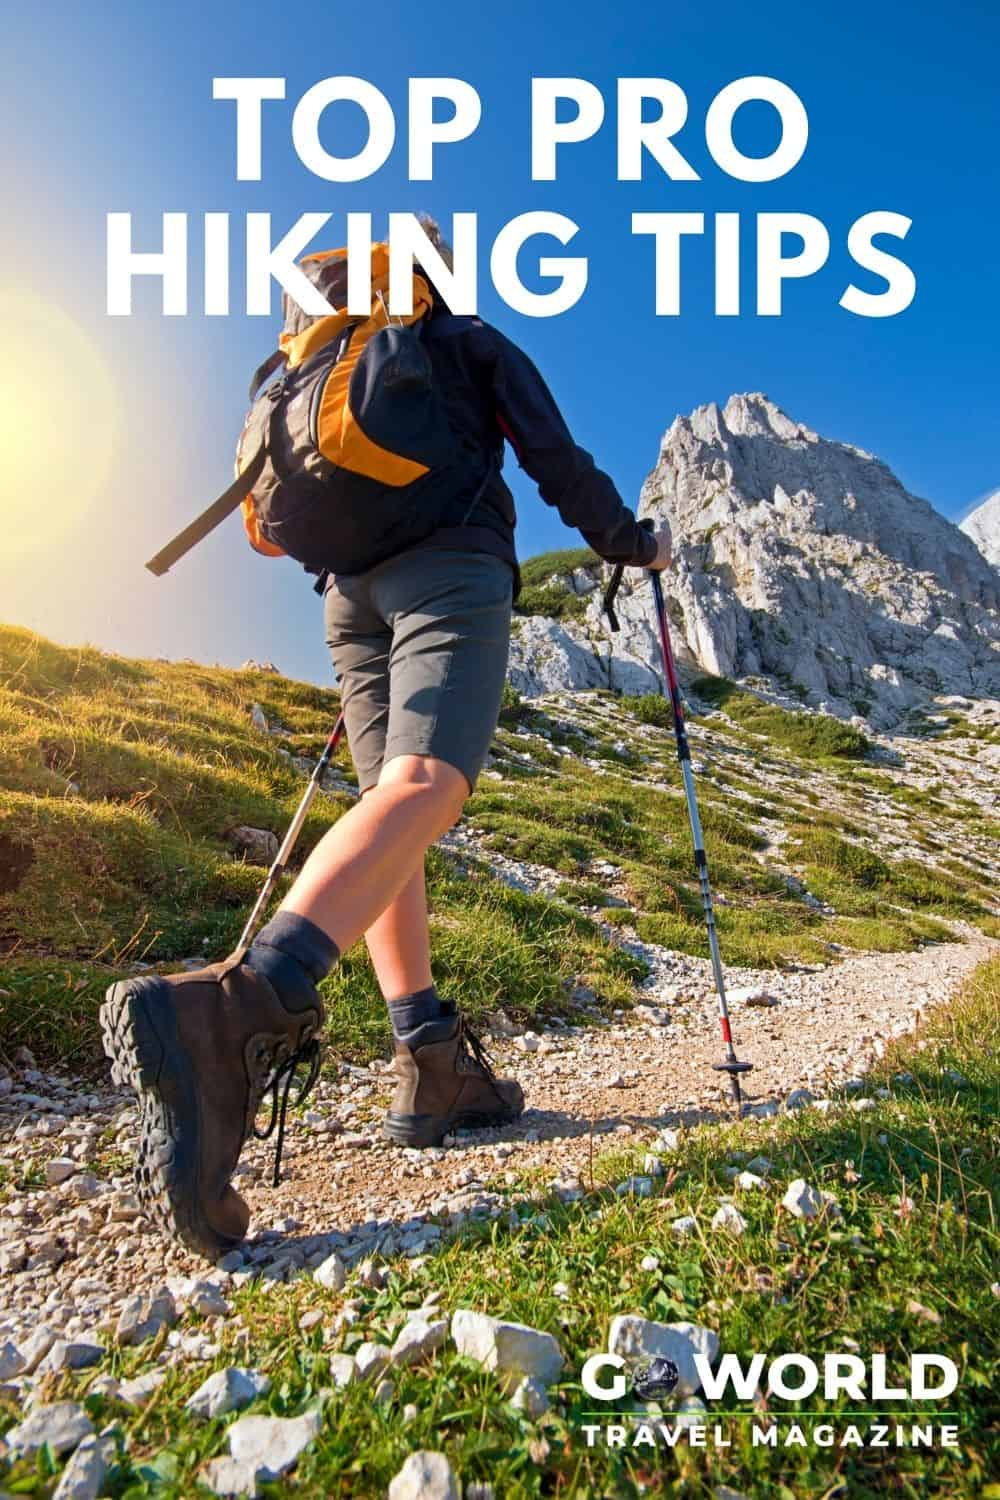 Don't miss these essential pro hiking tips from Ed Viesturs, the only American to have climbed all 14 of the world's 8,000+ meter peaks! #hikingtips #hikinginjuries #hikingequipment #hikingessentials